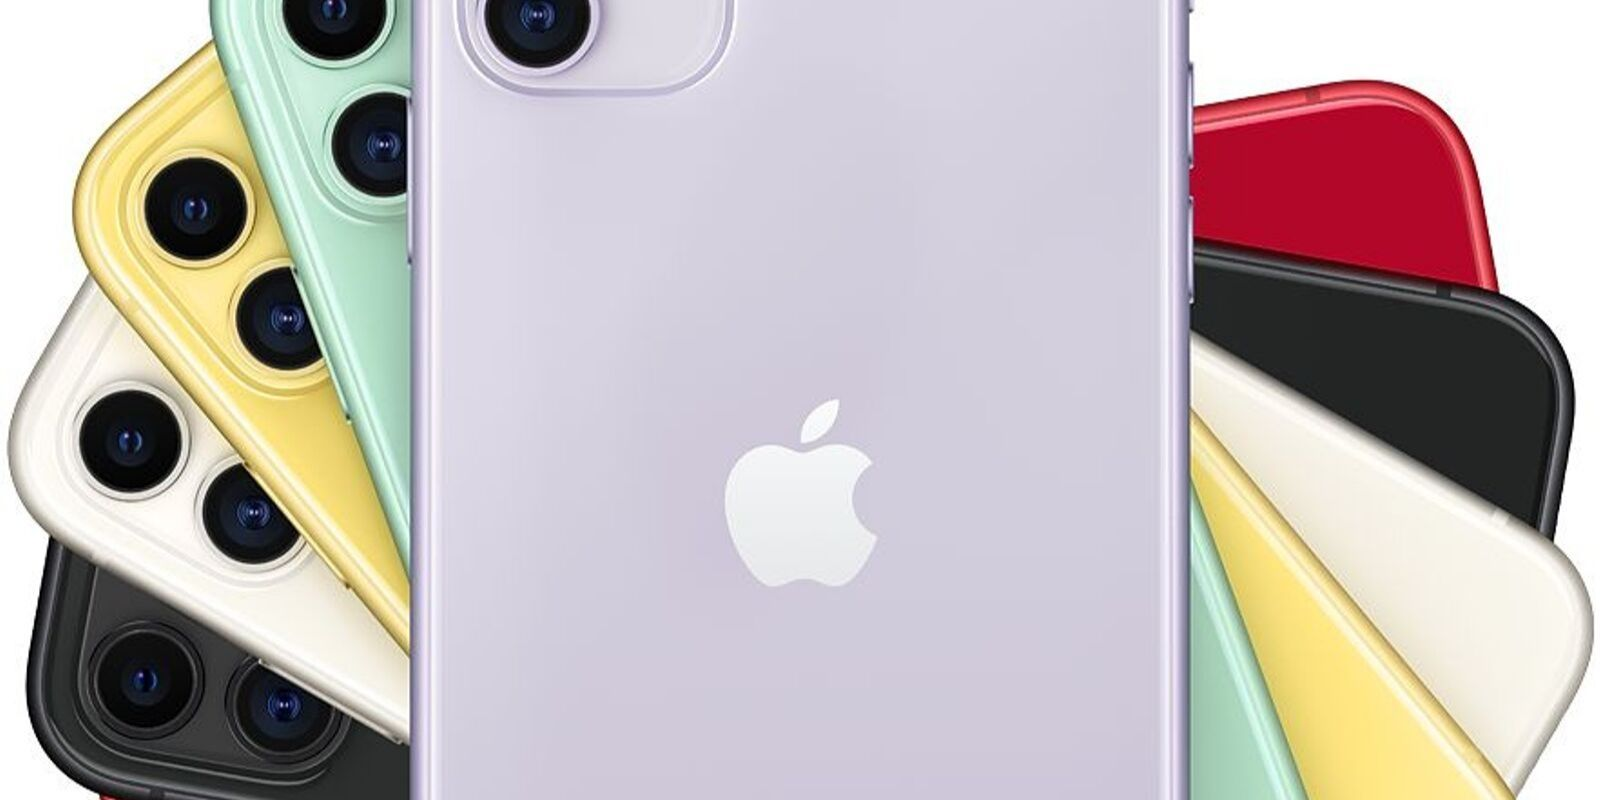 Newest iPhone now available in Canada